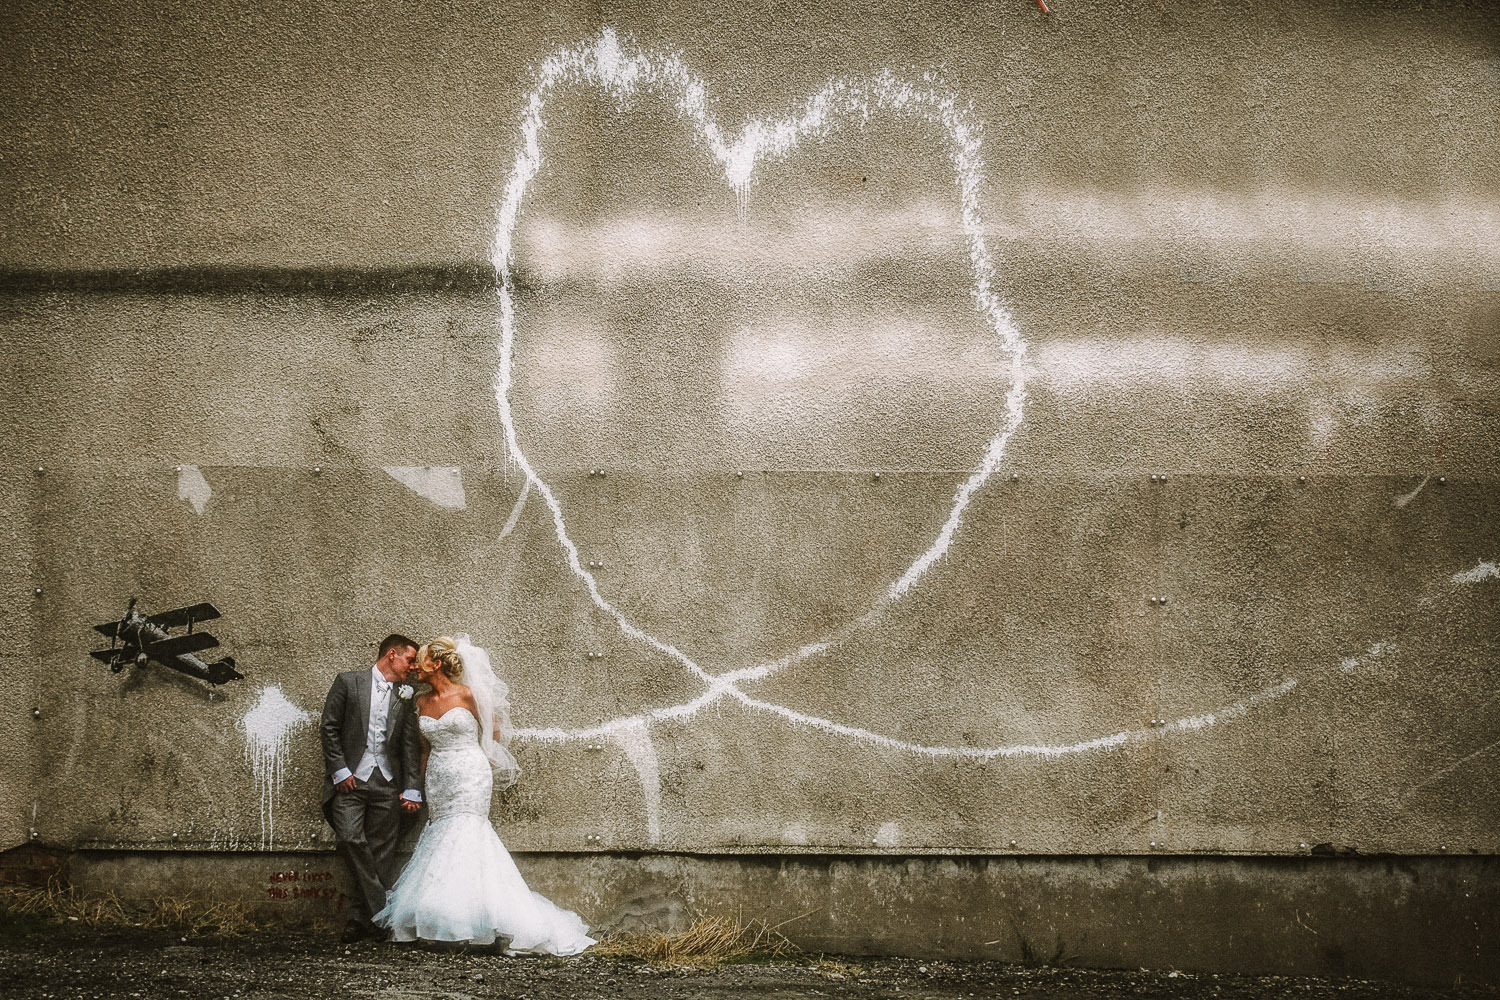 Liverpool wedding photographer Wes Simpson photo of Bride and Groom Banksy Love Plane